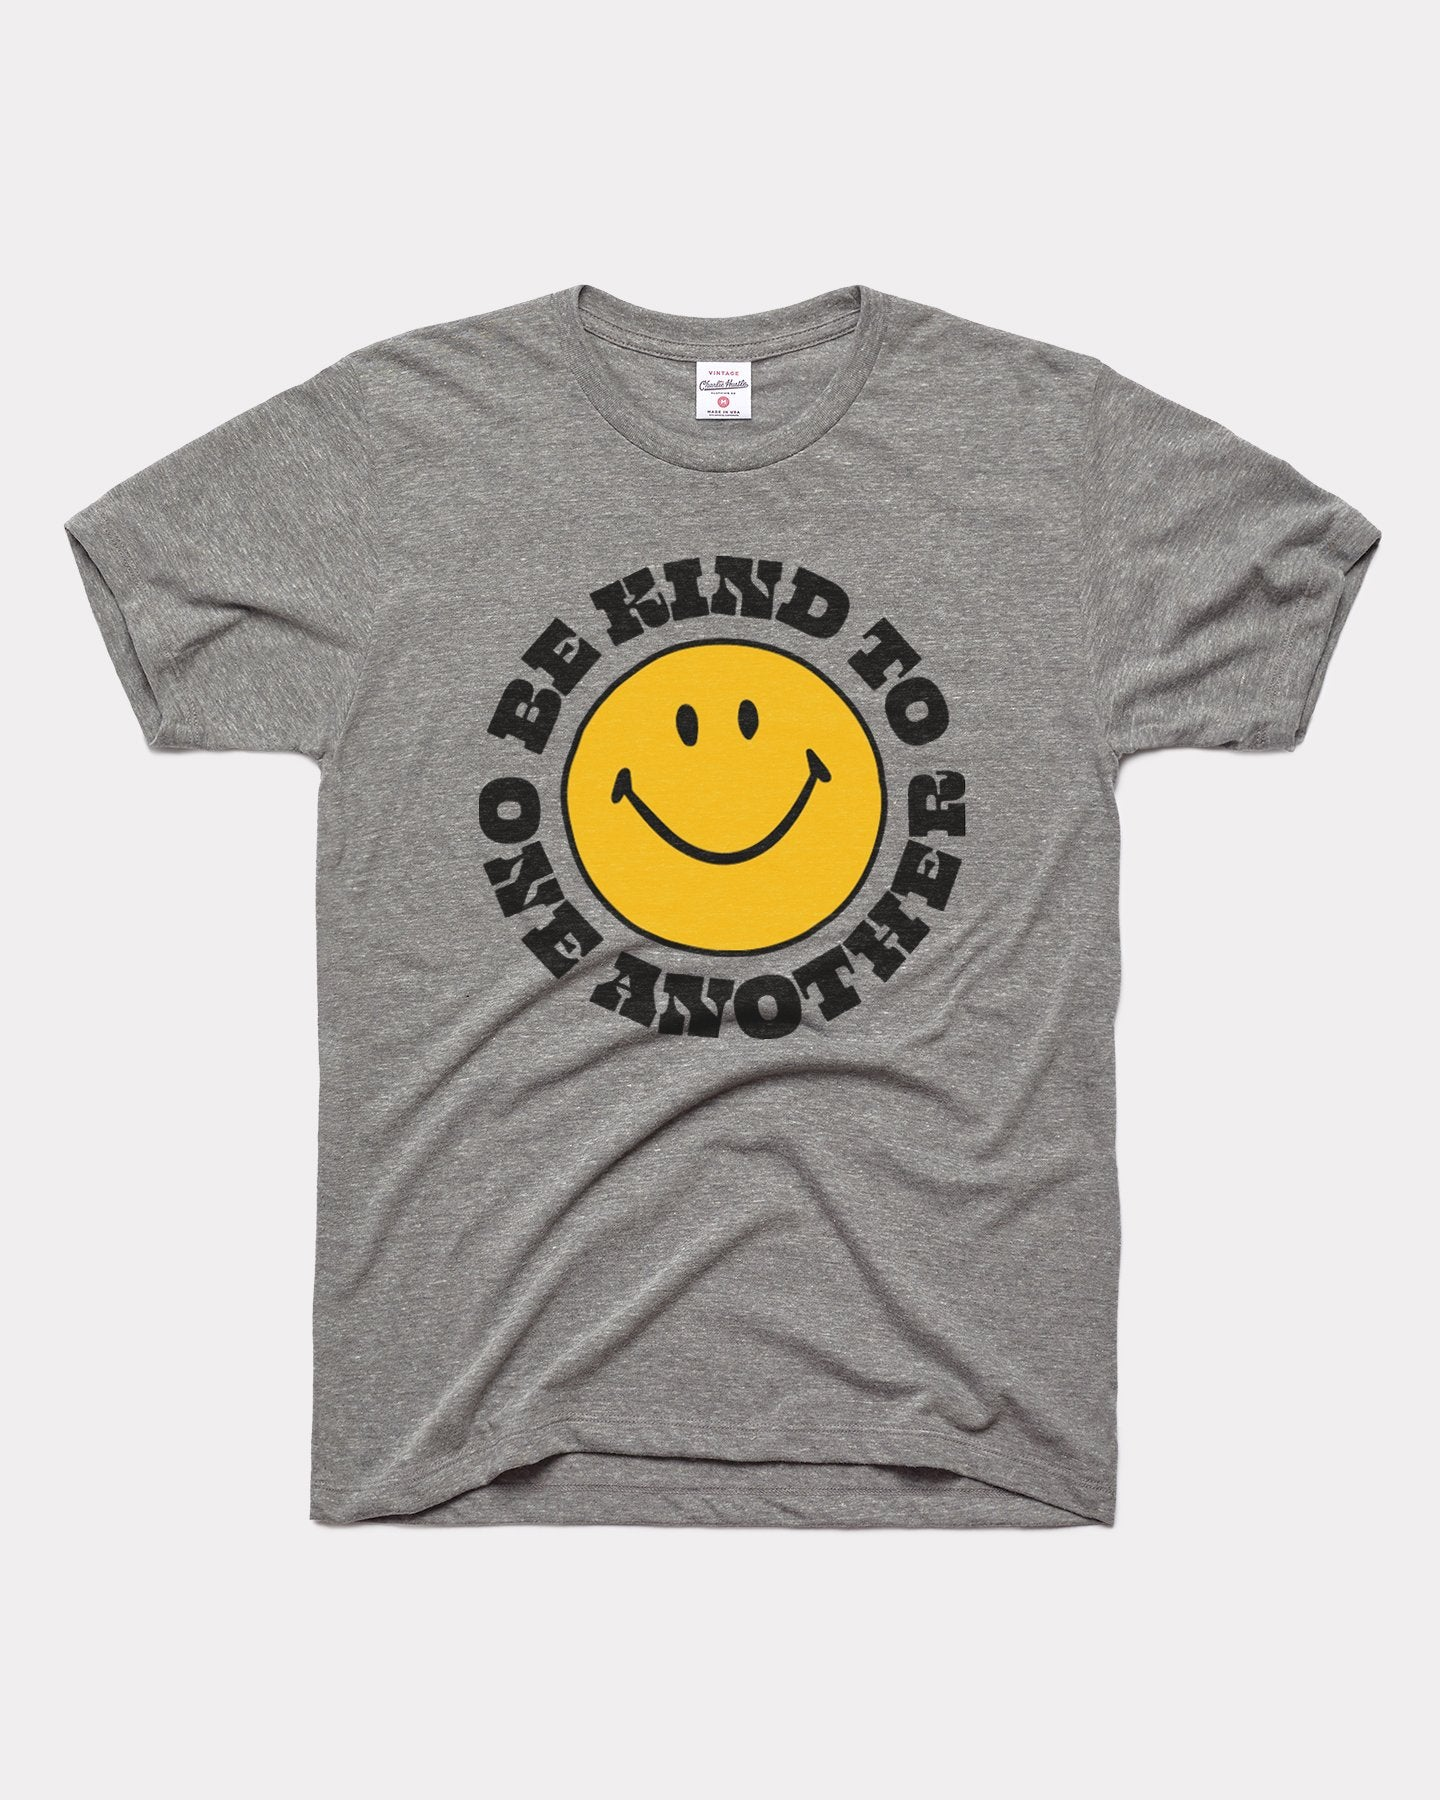 Grey Be Kind To One Another Smiley Face Vintage T-Shirt